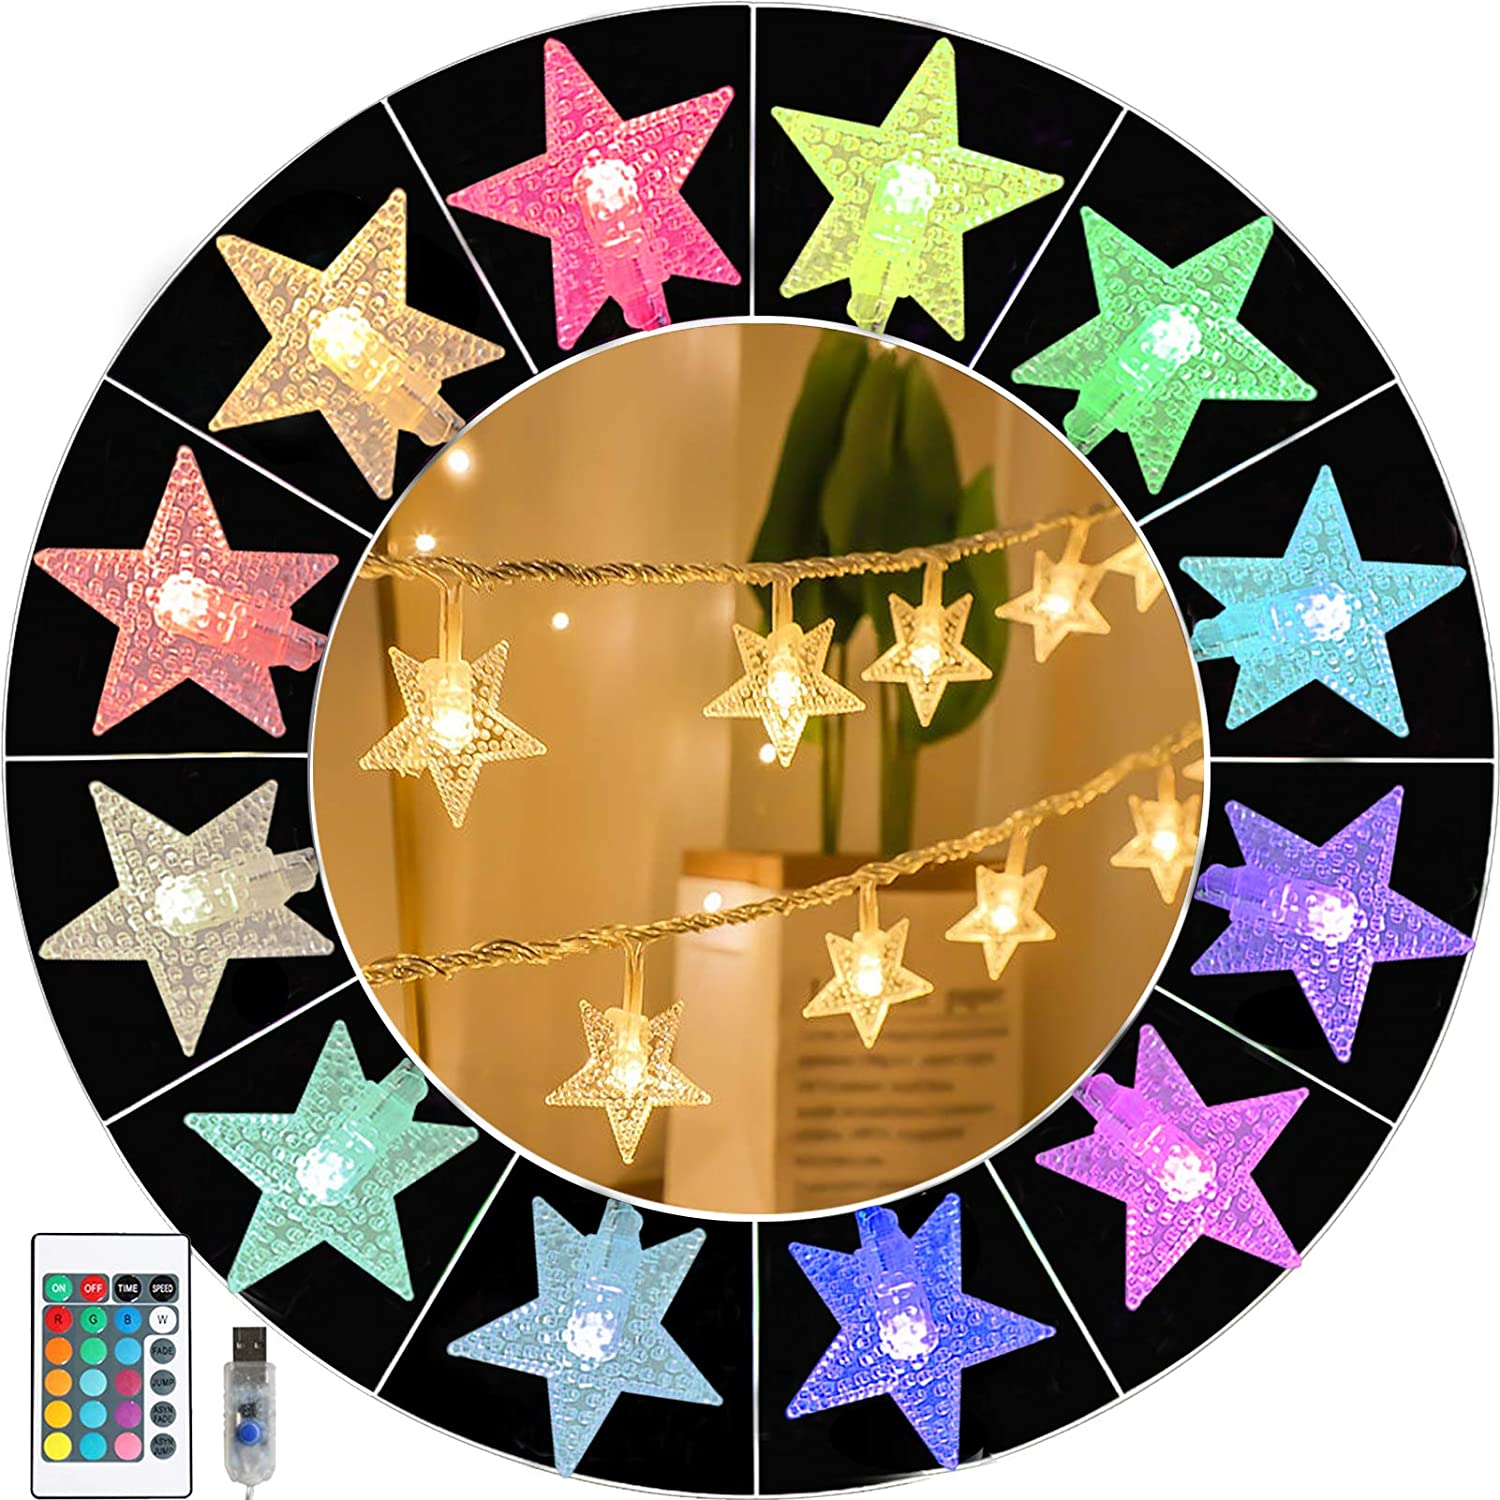 50Leds Colorful Star Fairy Lights, Remote 16 Colors Changing Indoor Outdoor Decorative String Lights for Wedding, Christmas, Birthday, Mother Day,Party Décor